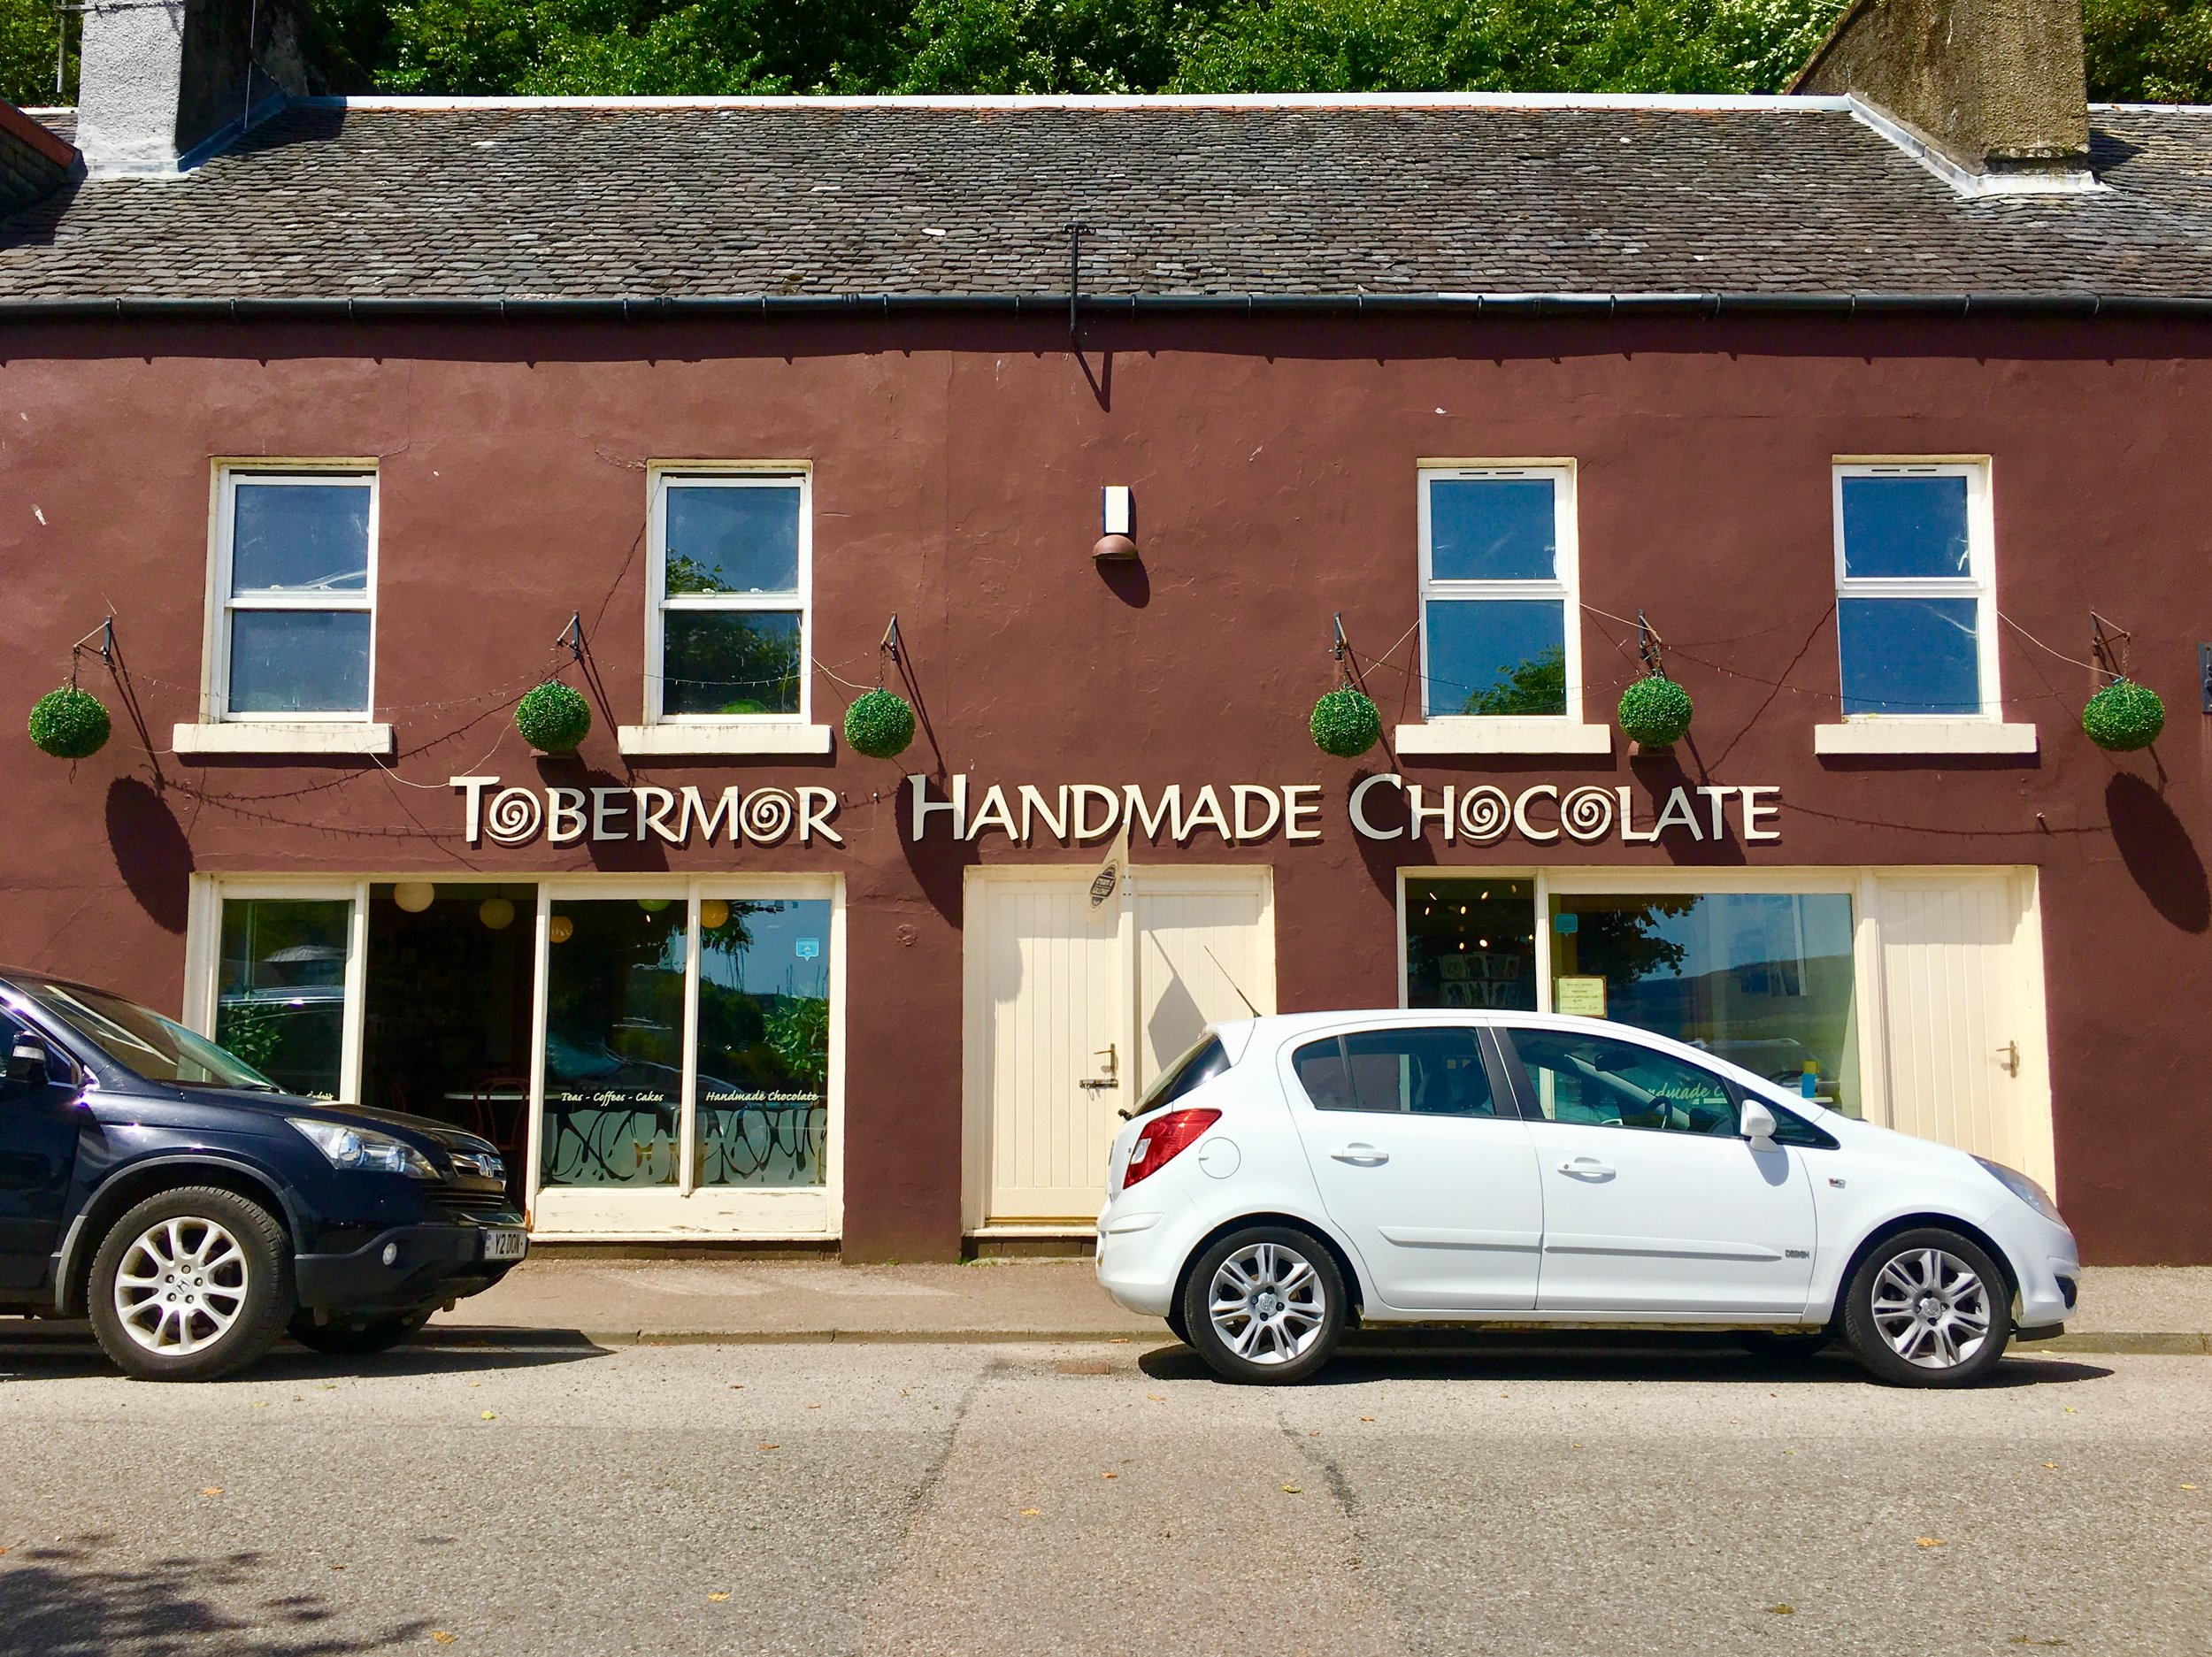 Just look for the chocolate colored building for Tobermory Handmade Chocolate.